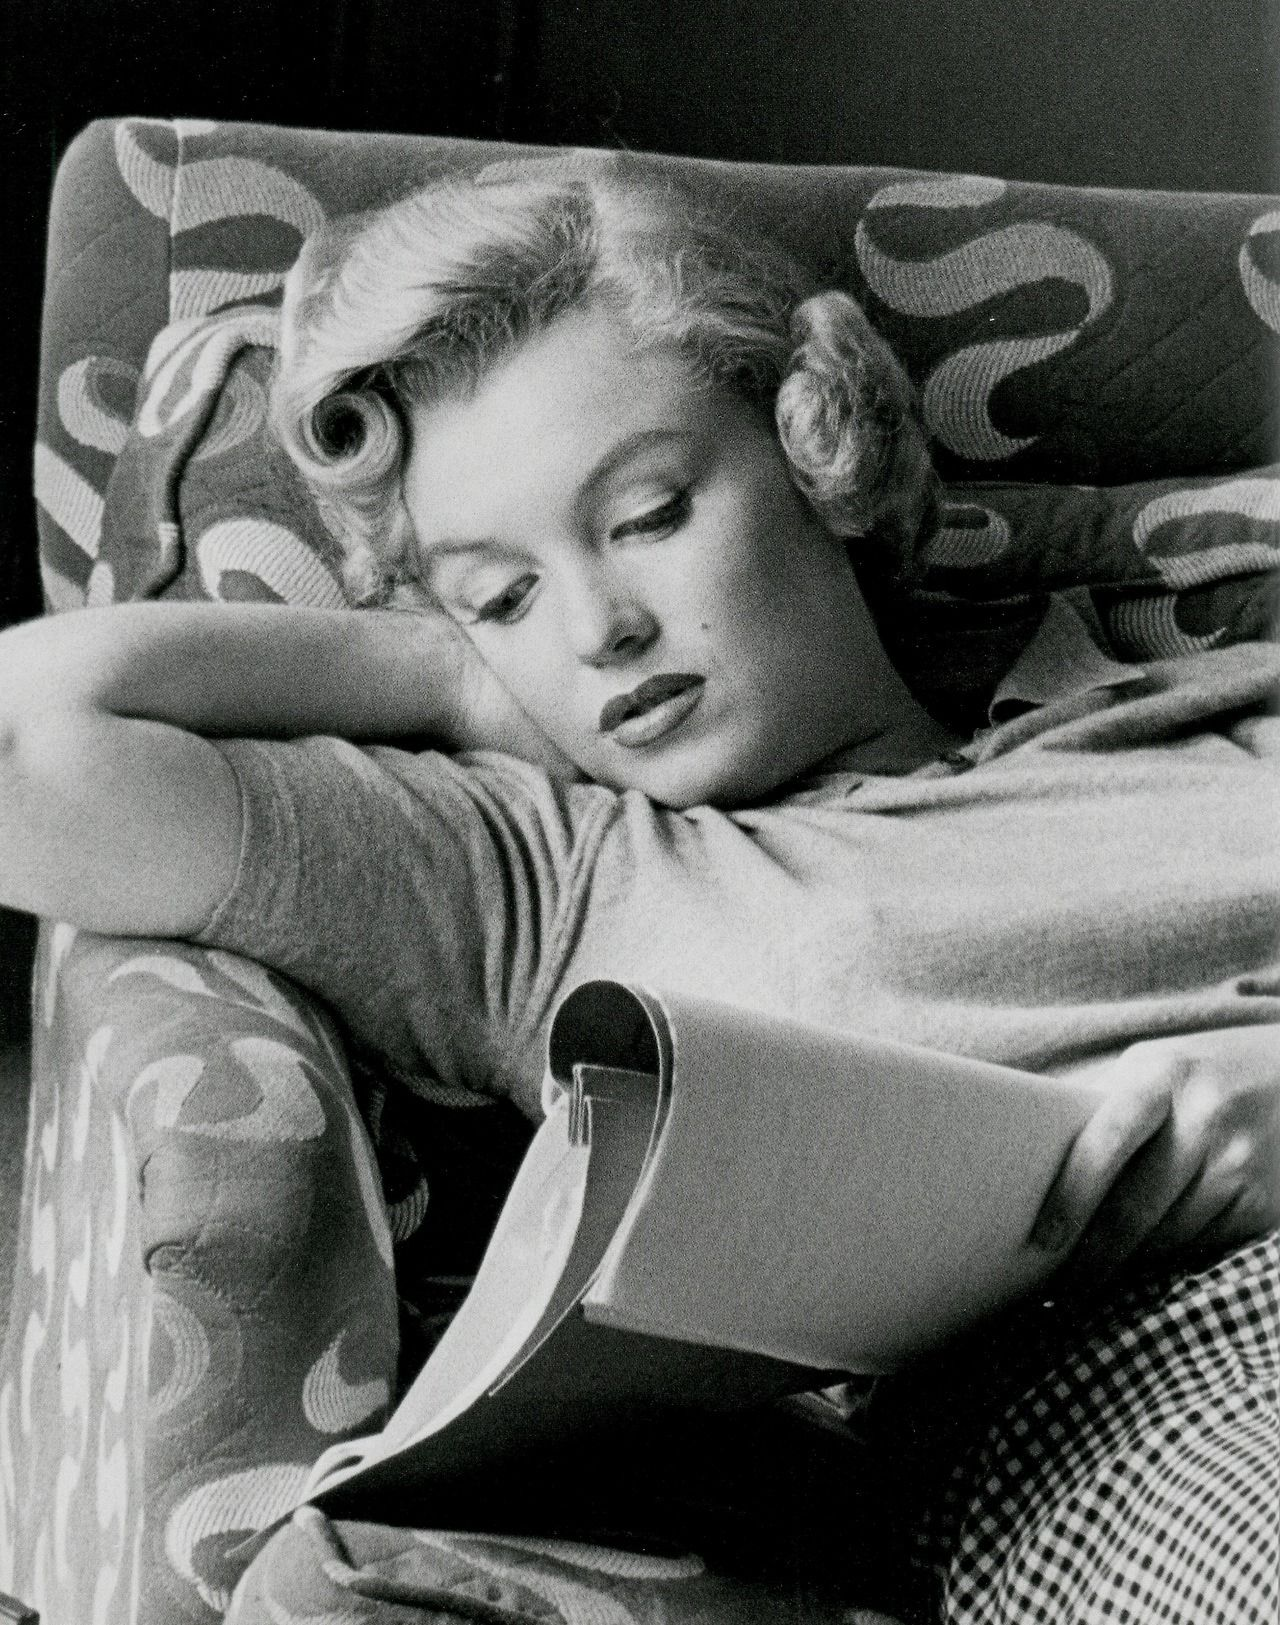 Marilyn Monroe At The Bel Air Hotel Photographed By Andre De